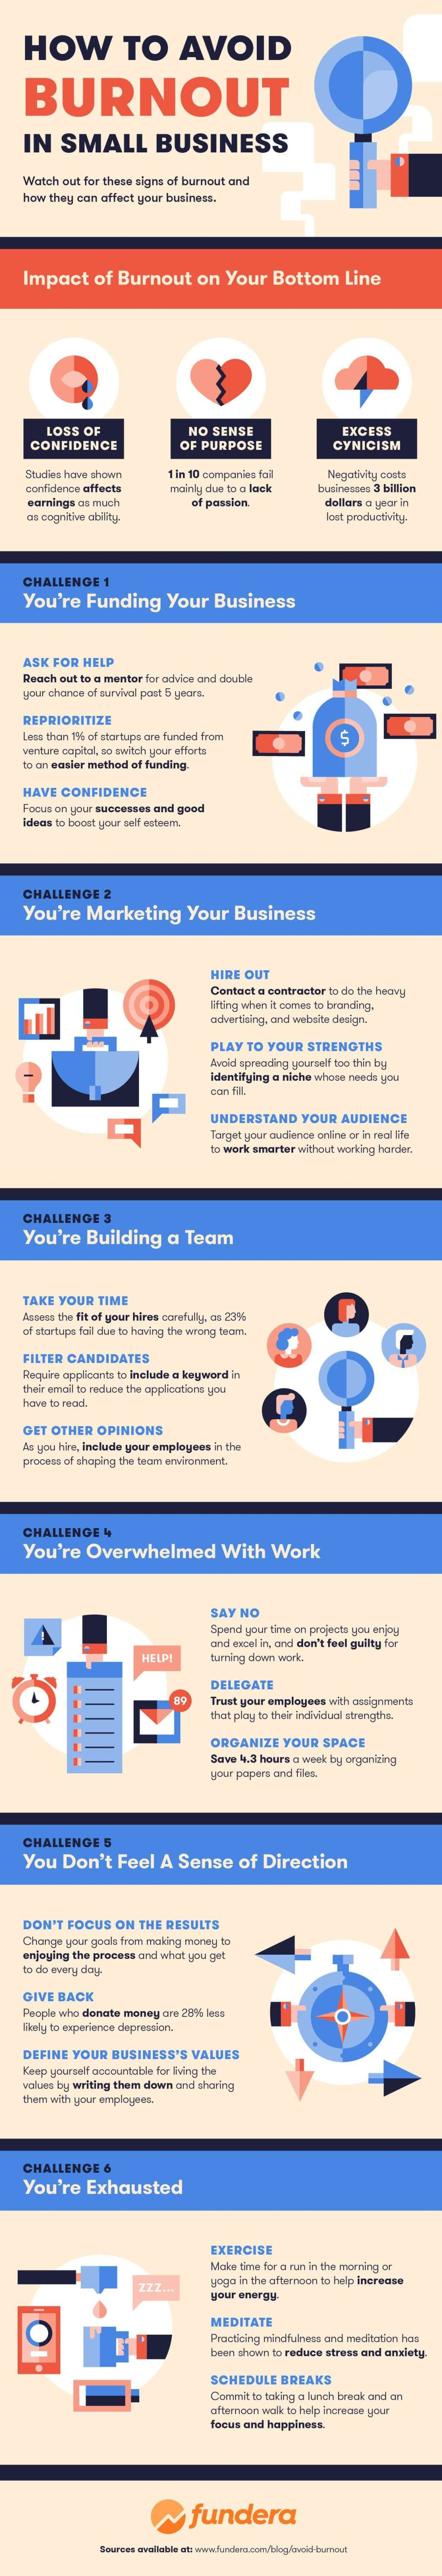 Infographic: How to avoid burnout in small business